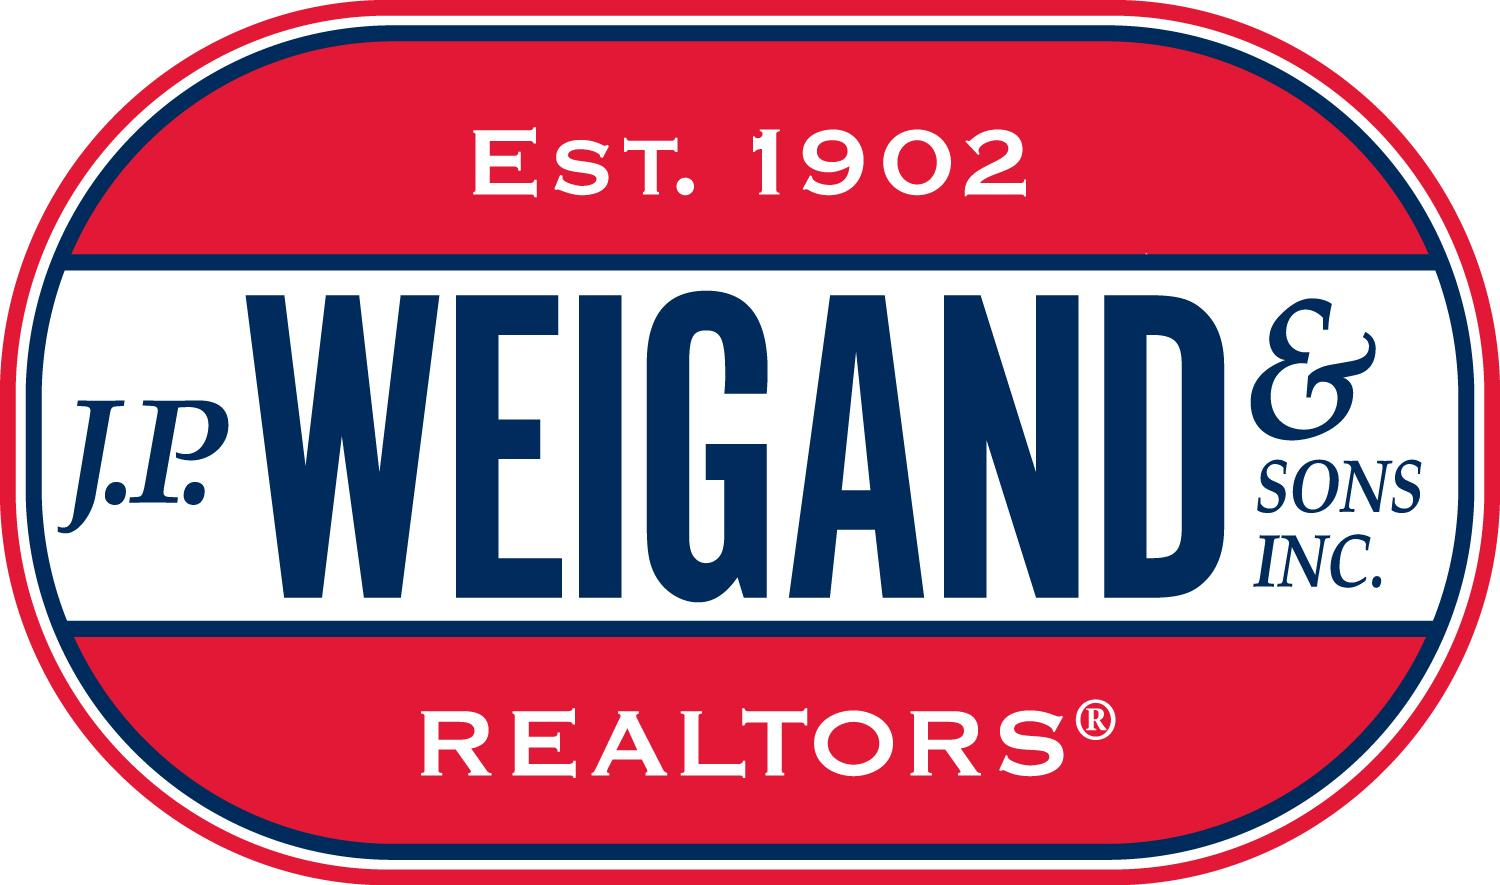 J.P. Weigand & Sons, Inc Commercial Division